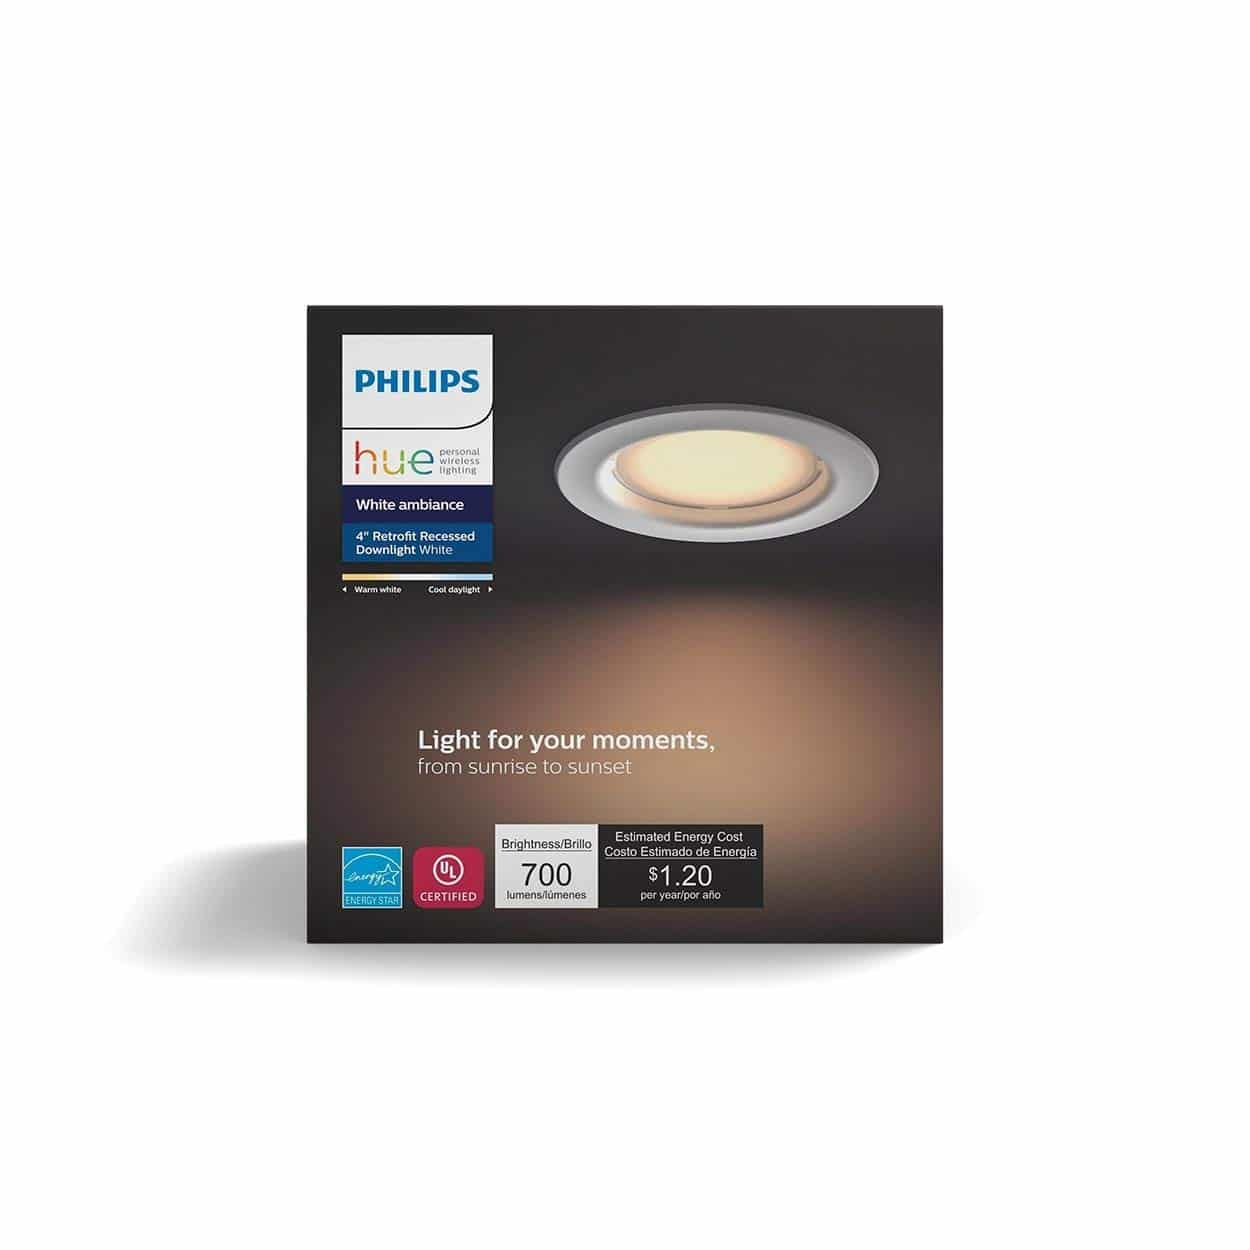 Philips Hue LED Smart Retrofit Recessed Downlight